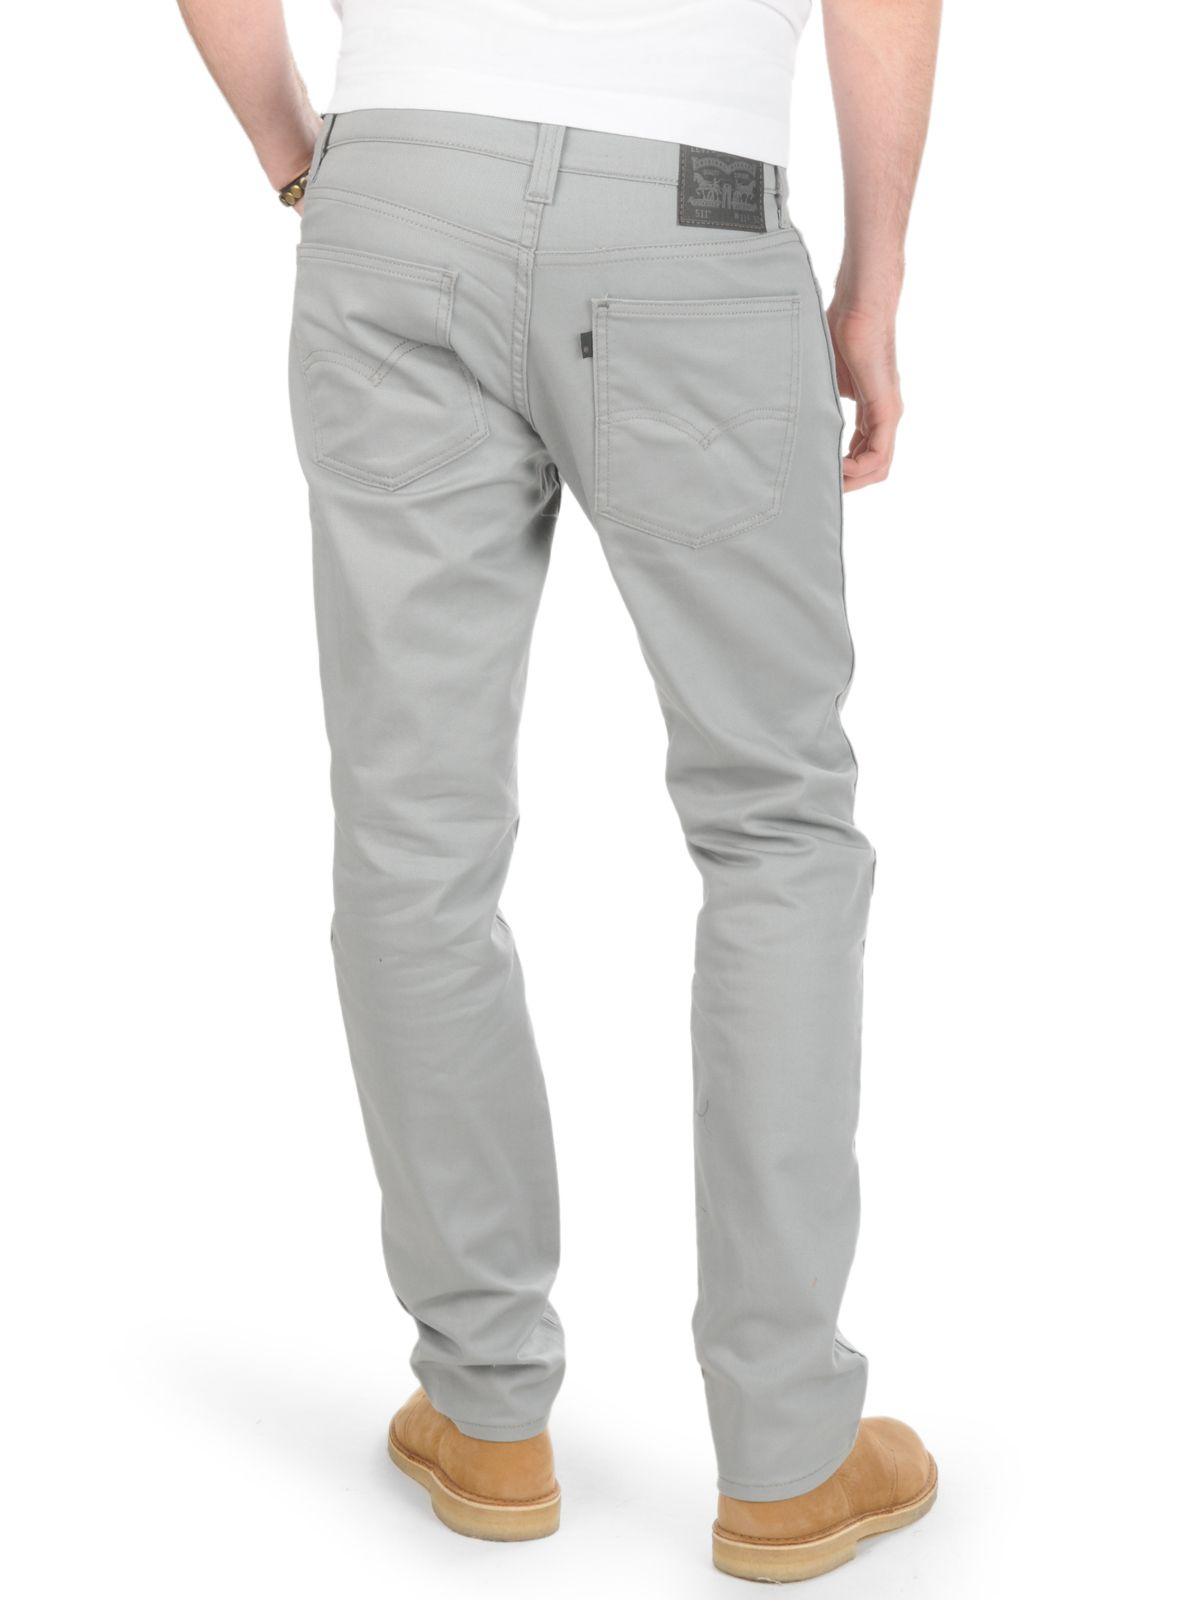 Levi S 511 Grey Levi Mens Fashion Grey Jeans